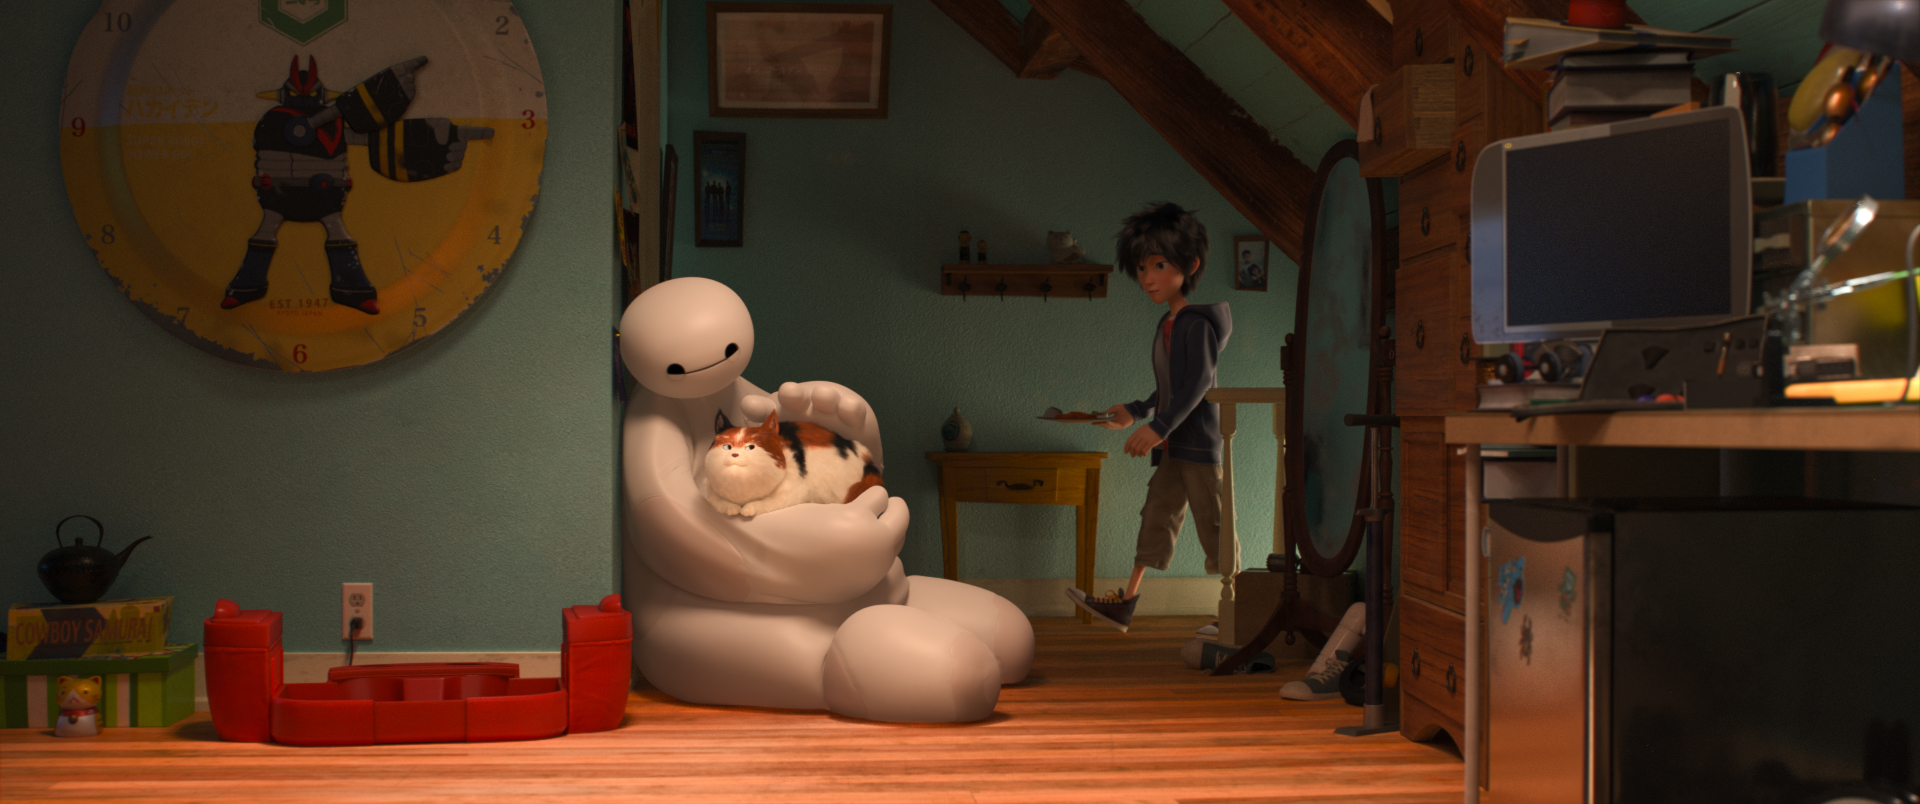 Big Hero 6: Baymax accarezza il gatto di Hiro in una tenera scena del film